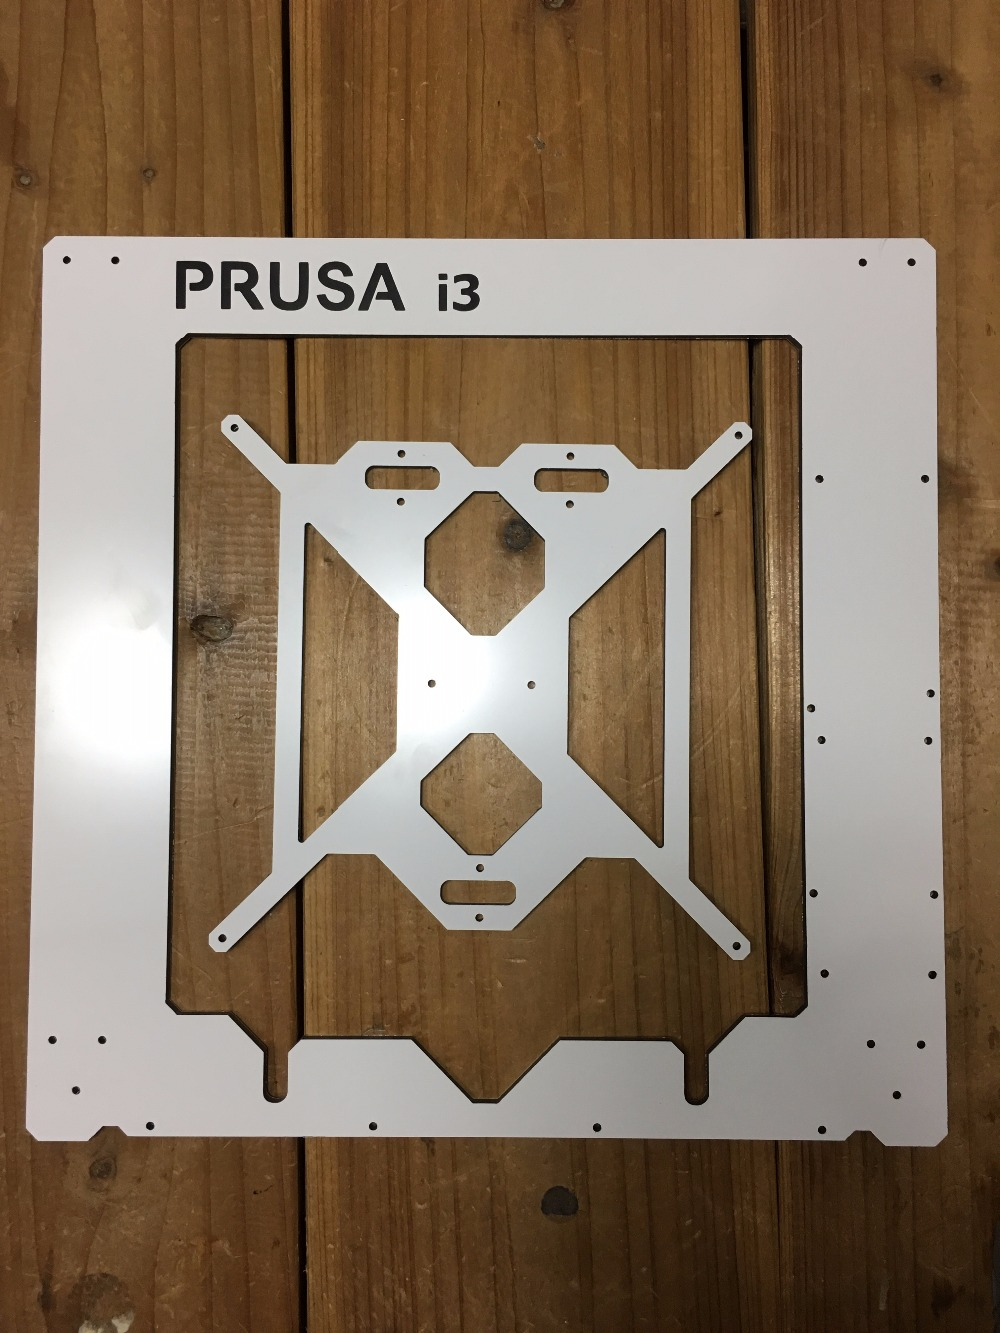 Prusa i3 Rework 3D printer aluminum composite frame kit RepRap Prusa i3 white color composite plate frame 3D Printer DIY 6 mm [sintron] 3d printer full frame mechanical kit for reprap prusa i3 diy acrylic frame plastic parts lm8uu bearings